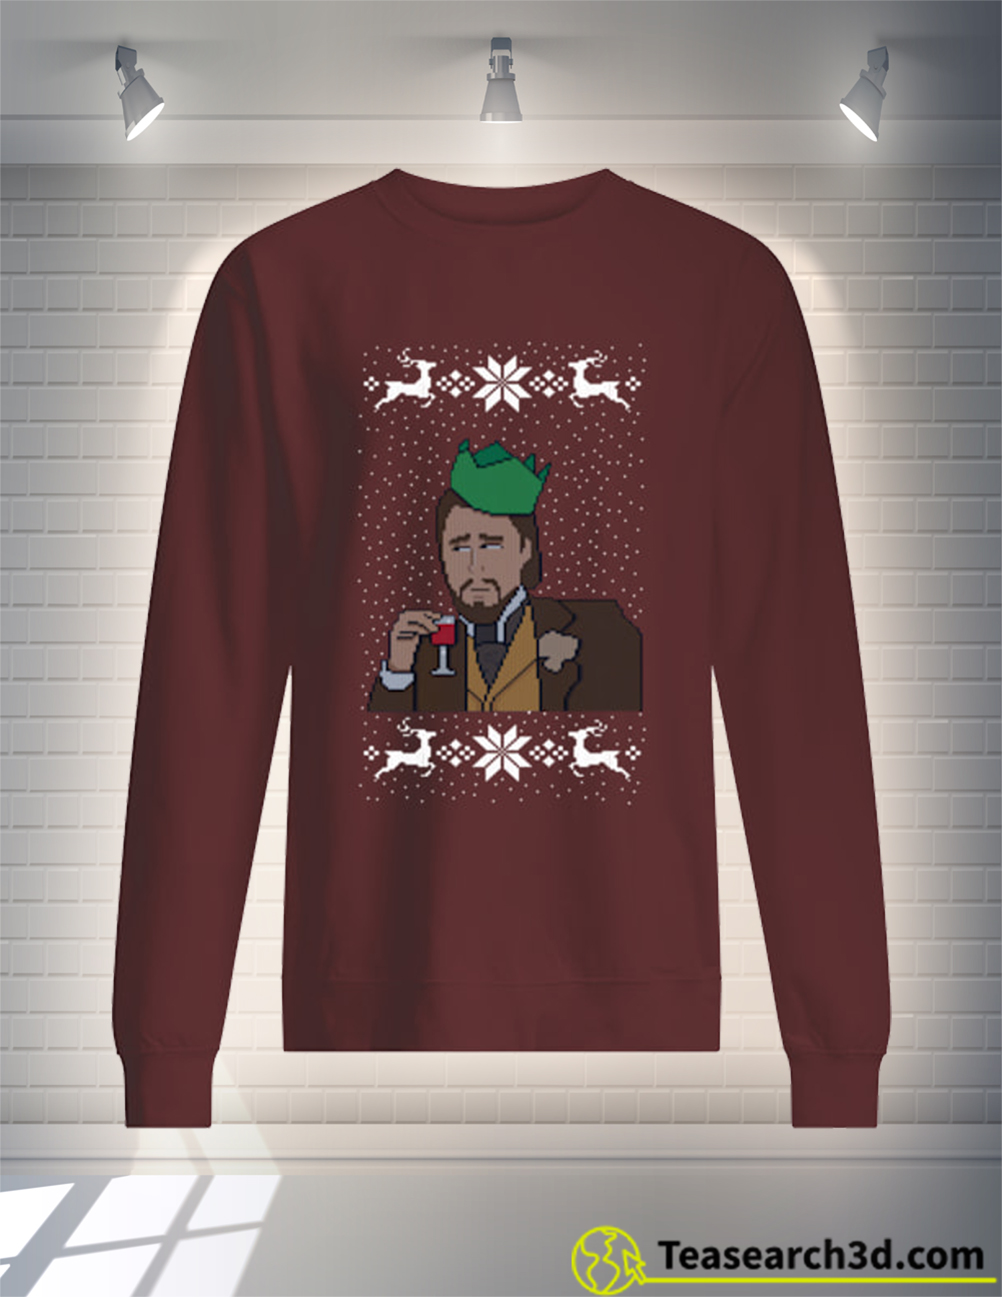 Leonardo DiCaprio christmas sweater and jumper hot chocolate